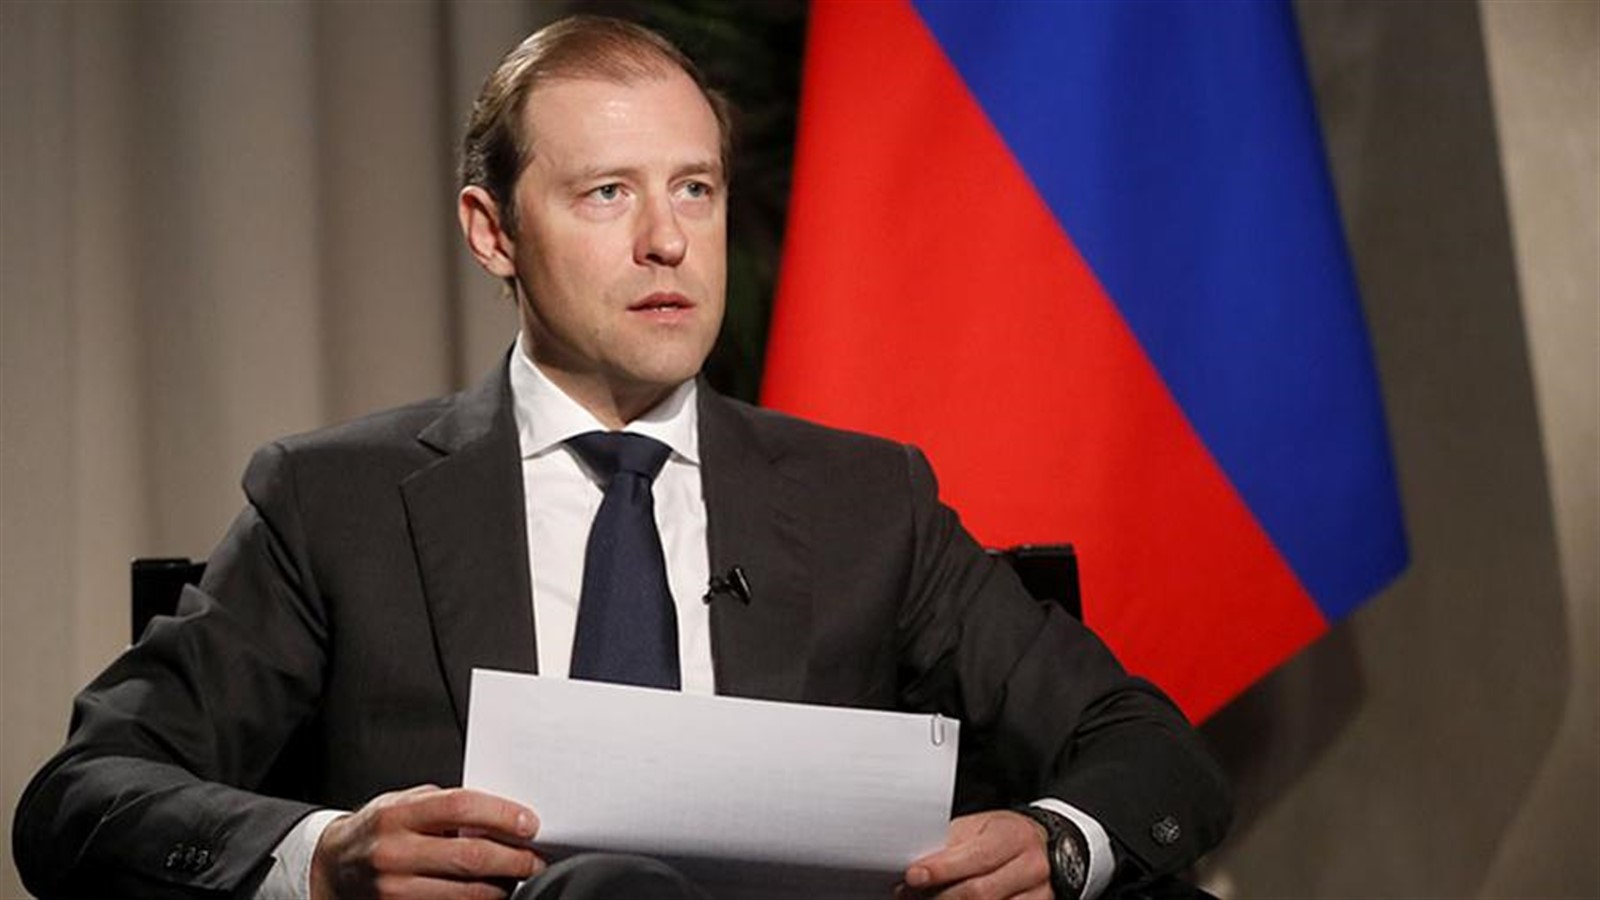 Photo of Manturov announces the production of drugs in Russia to fight COVID-19